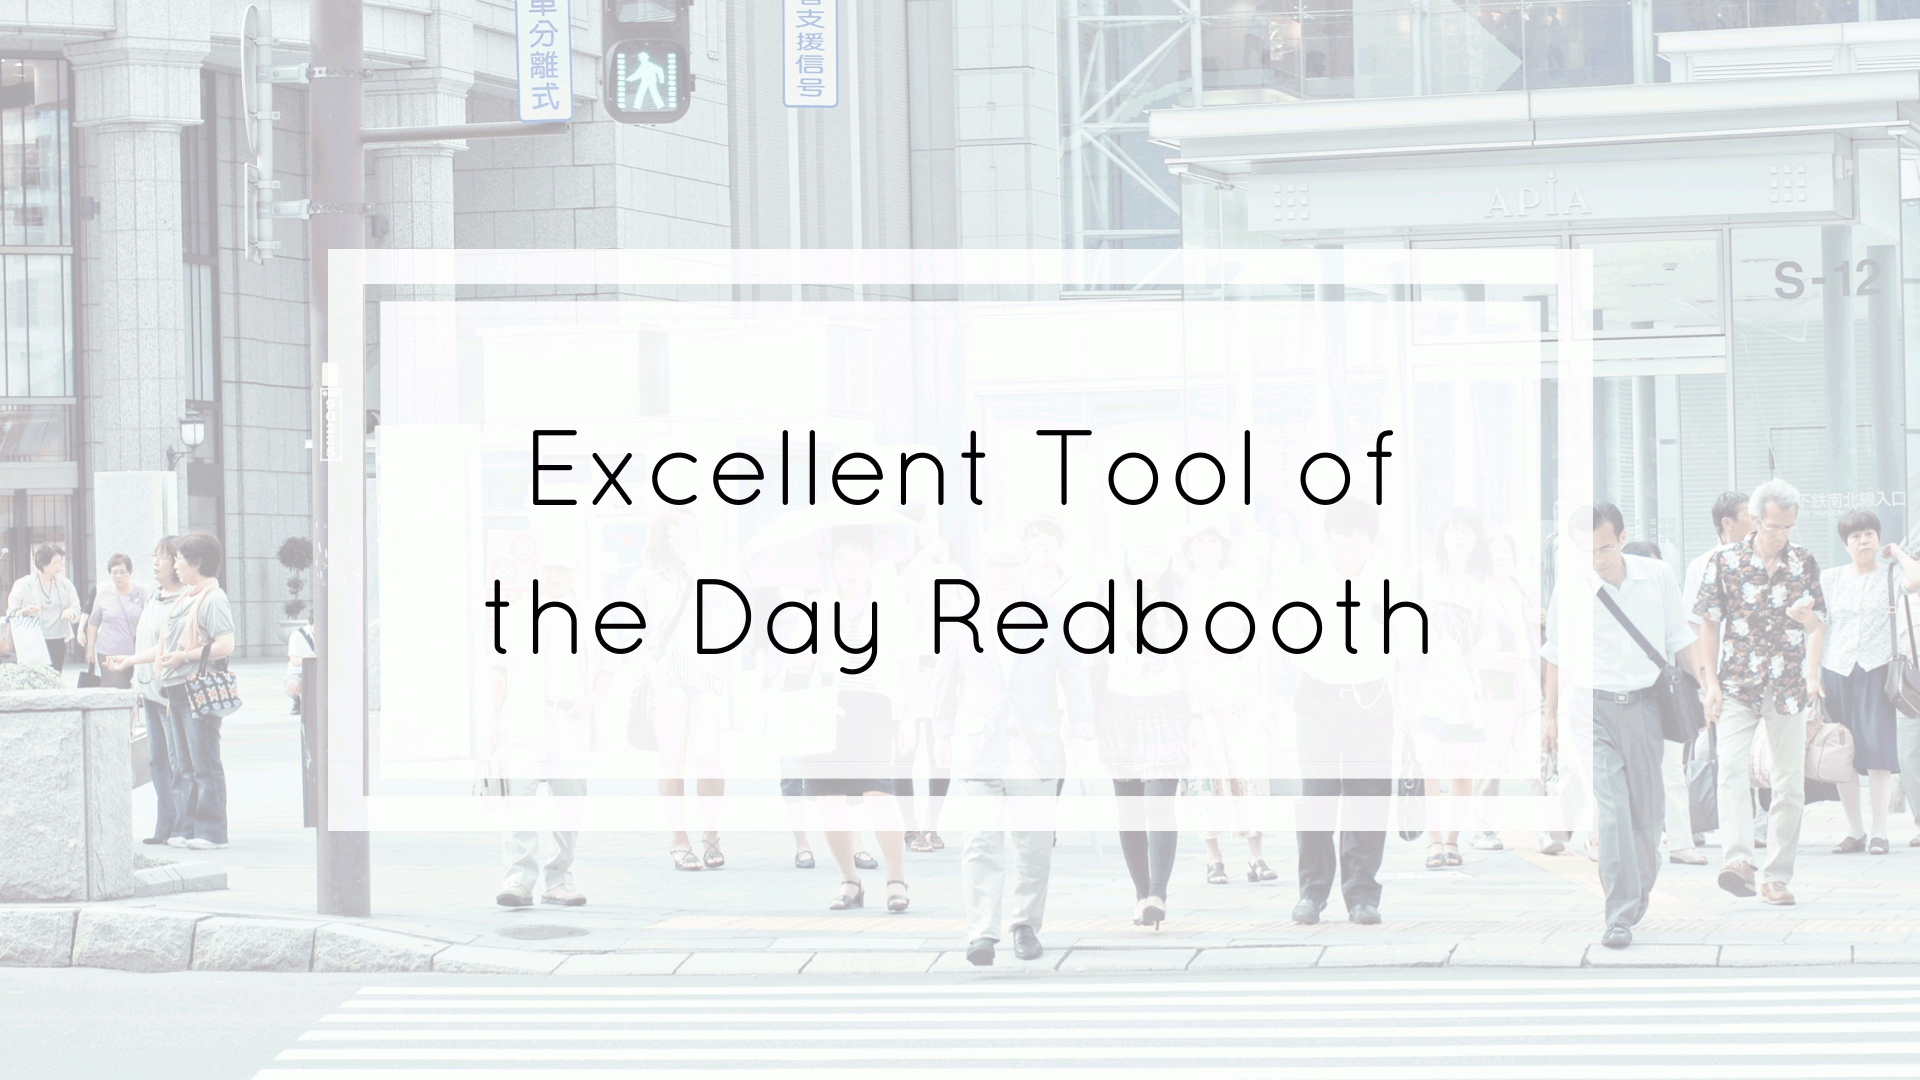 excellent tool of the day Redbooth